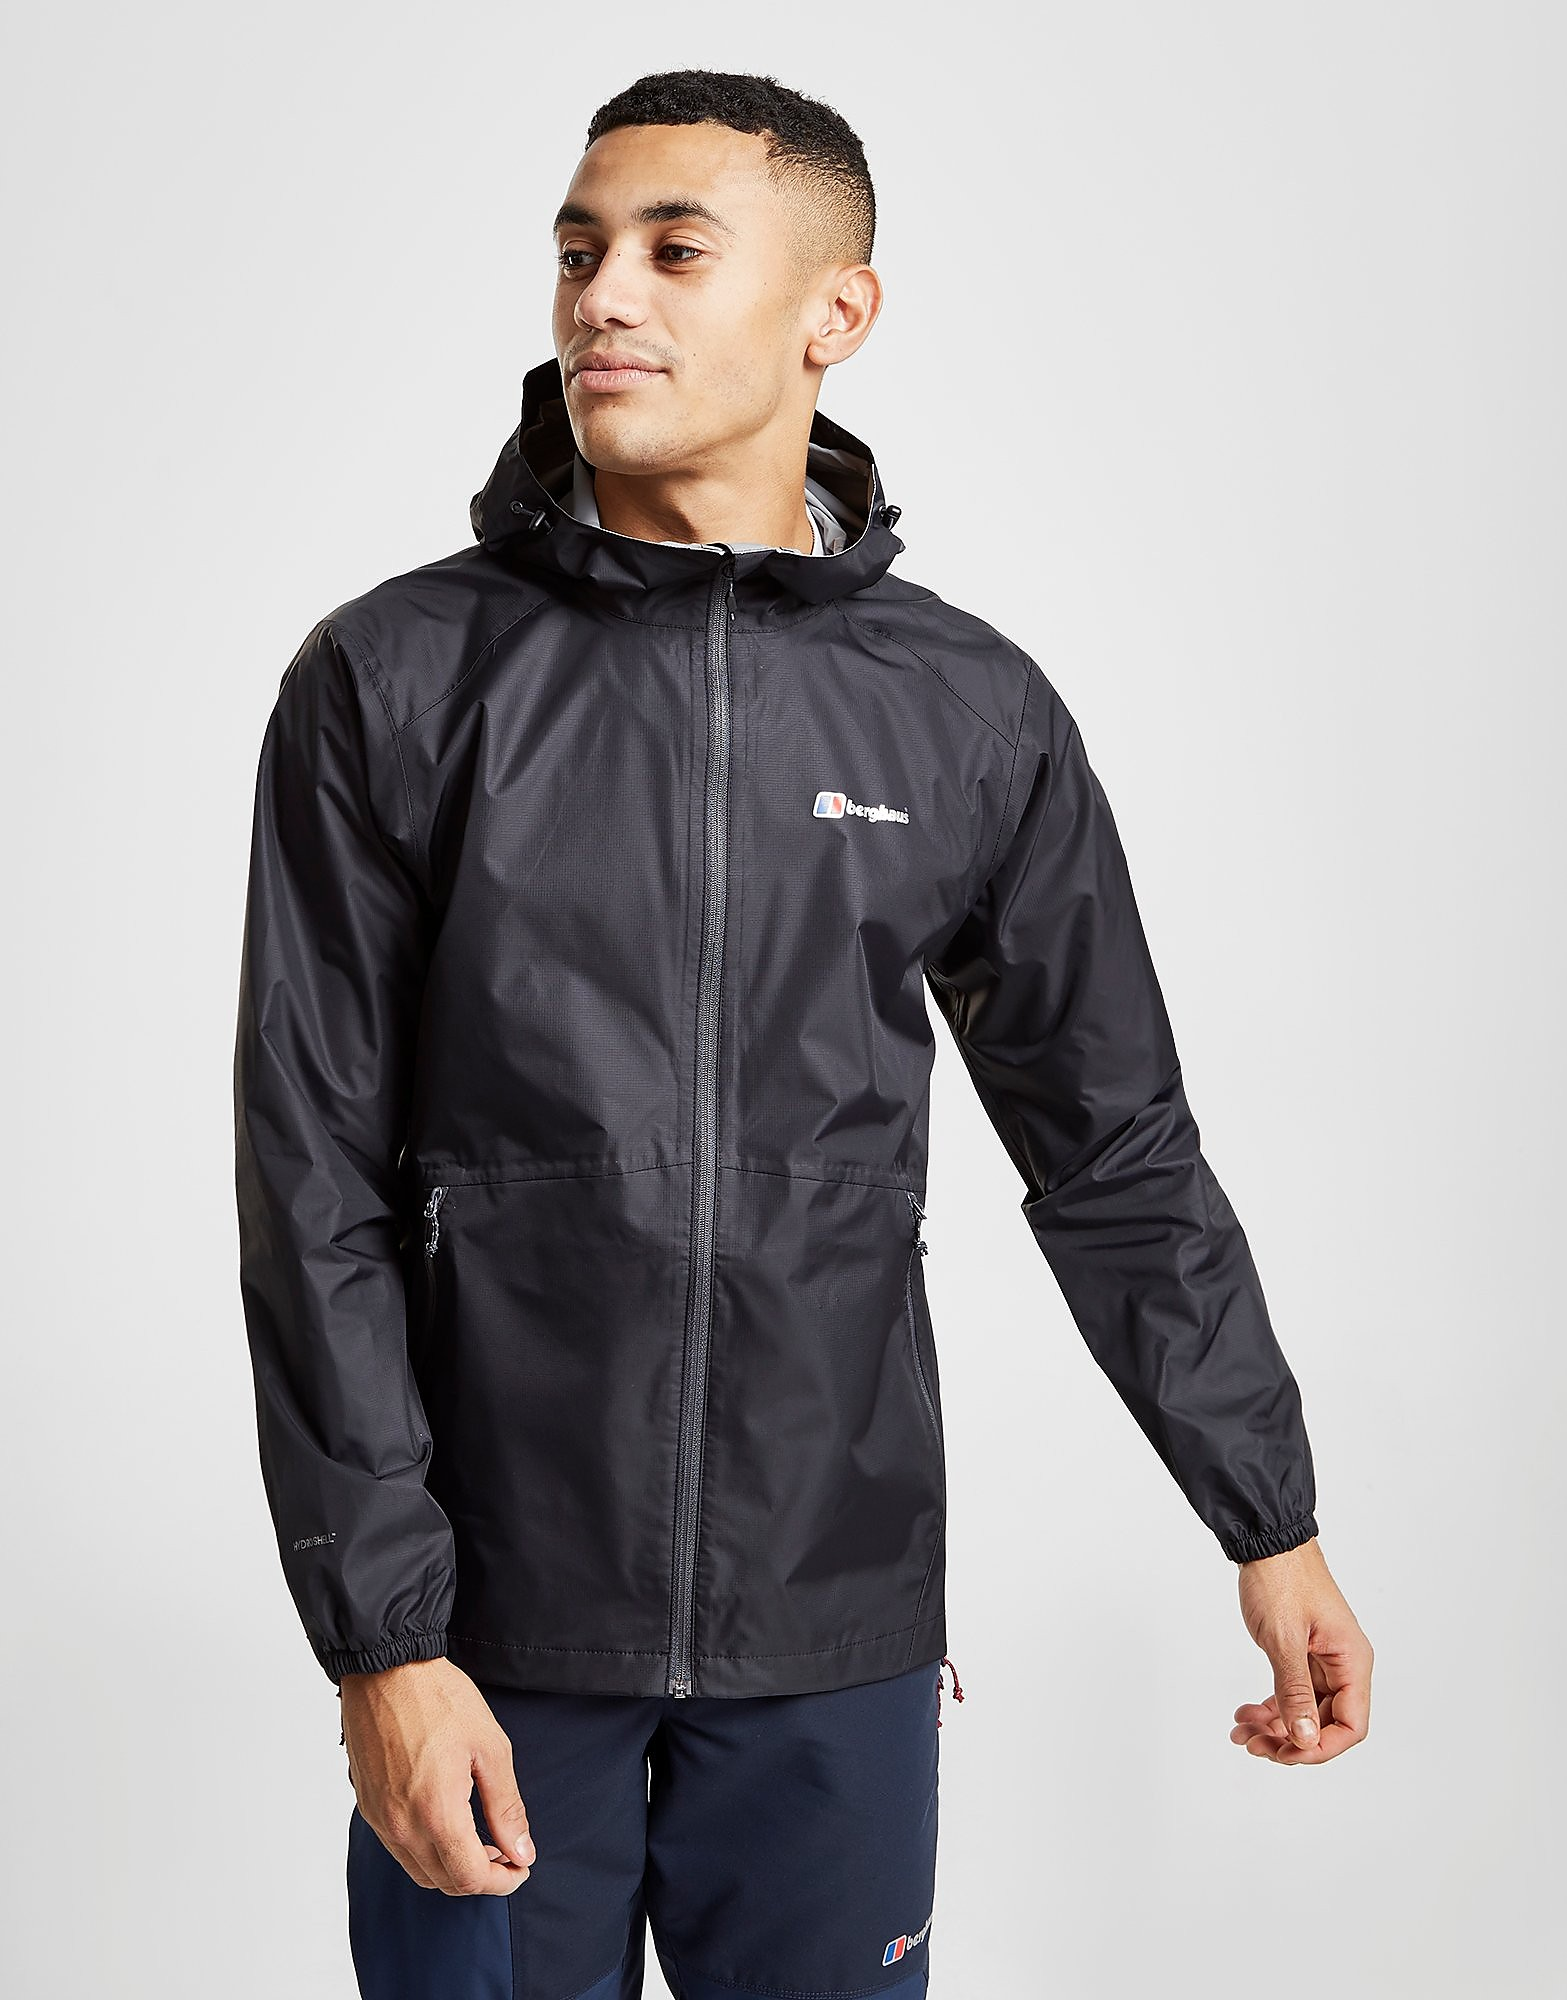 Berghaus Deluge Light Jacket Heren - Zwart - Heren